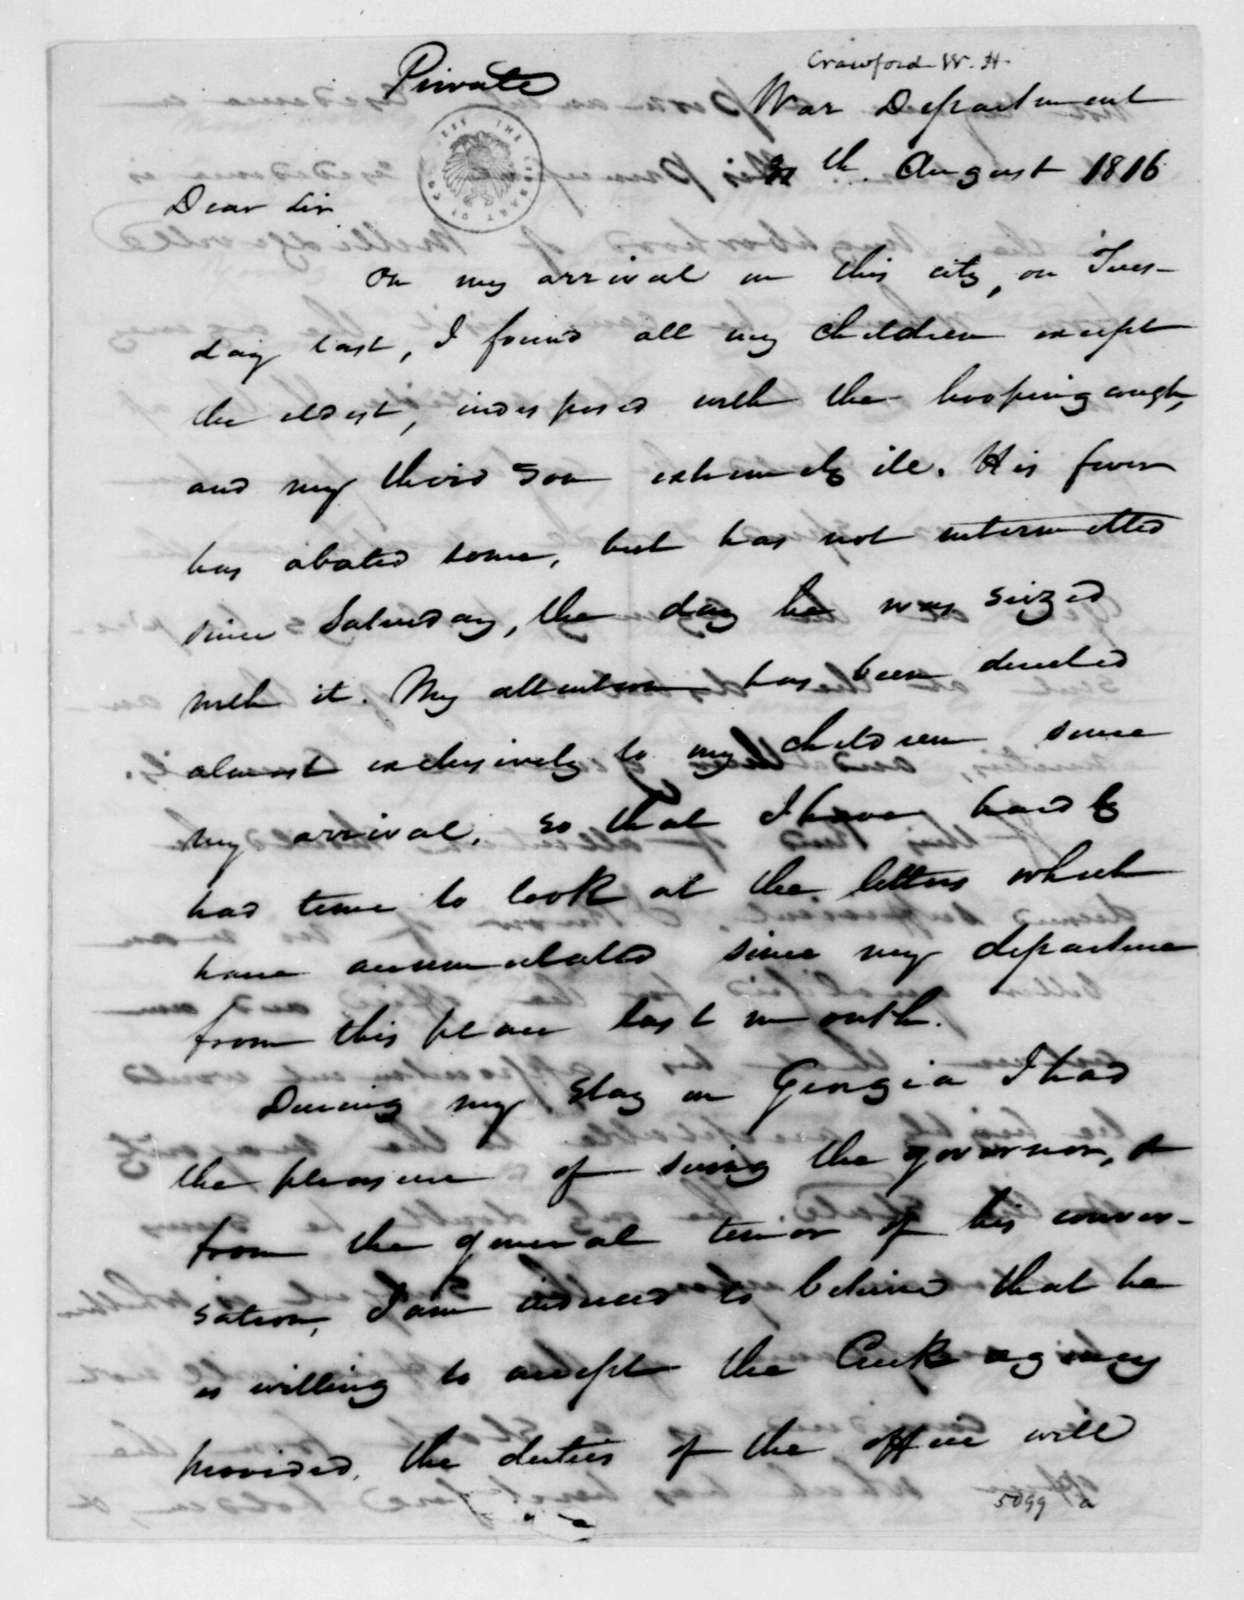 William H. Crawford to James Madison, August 30, 1816.